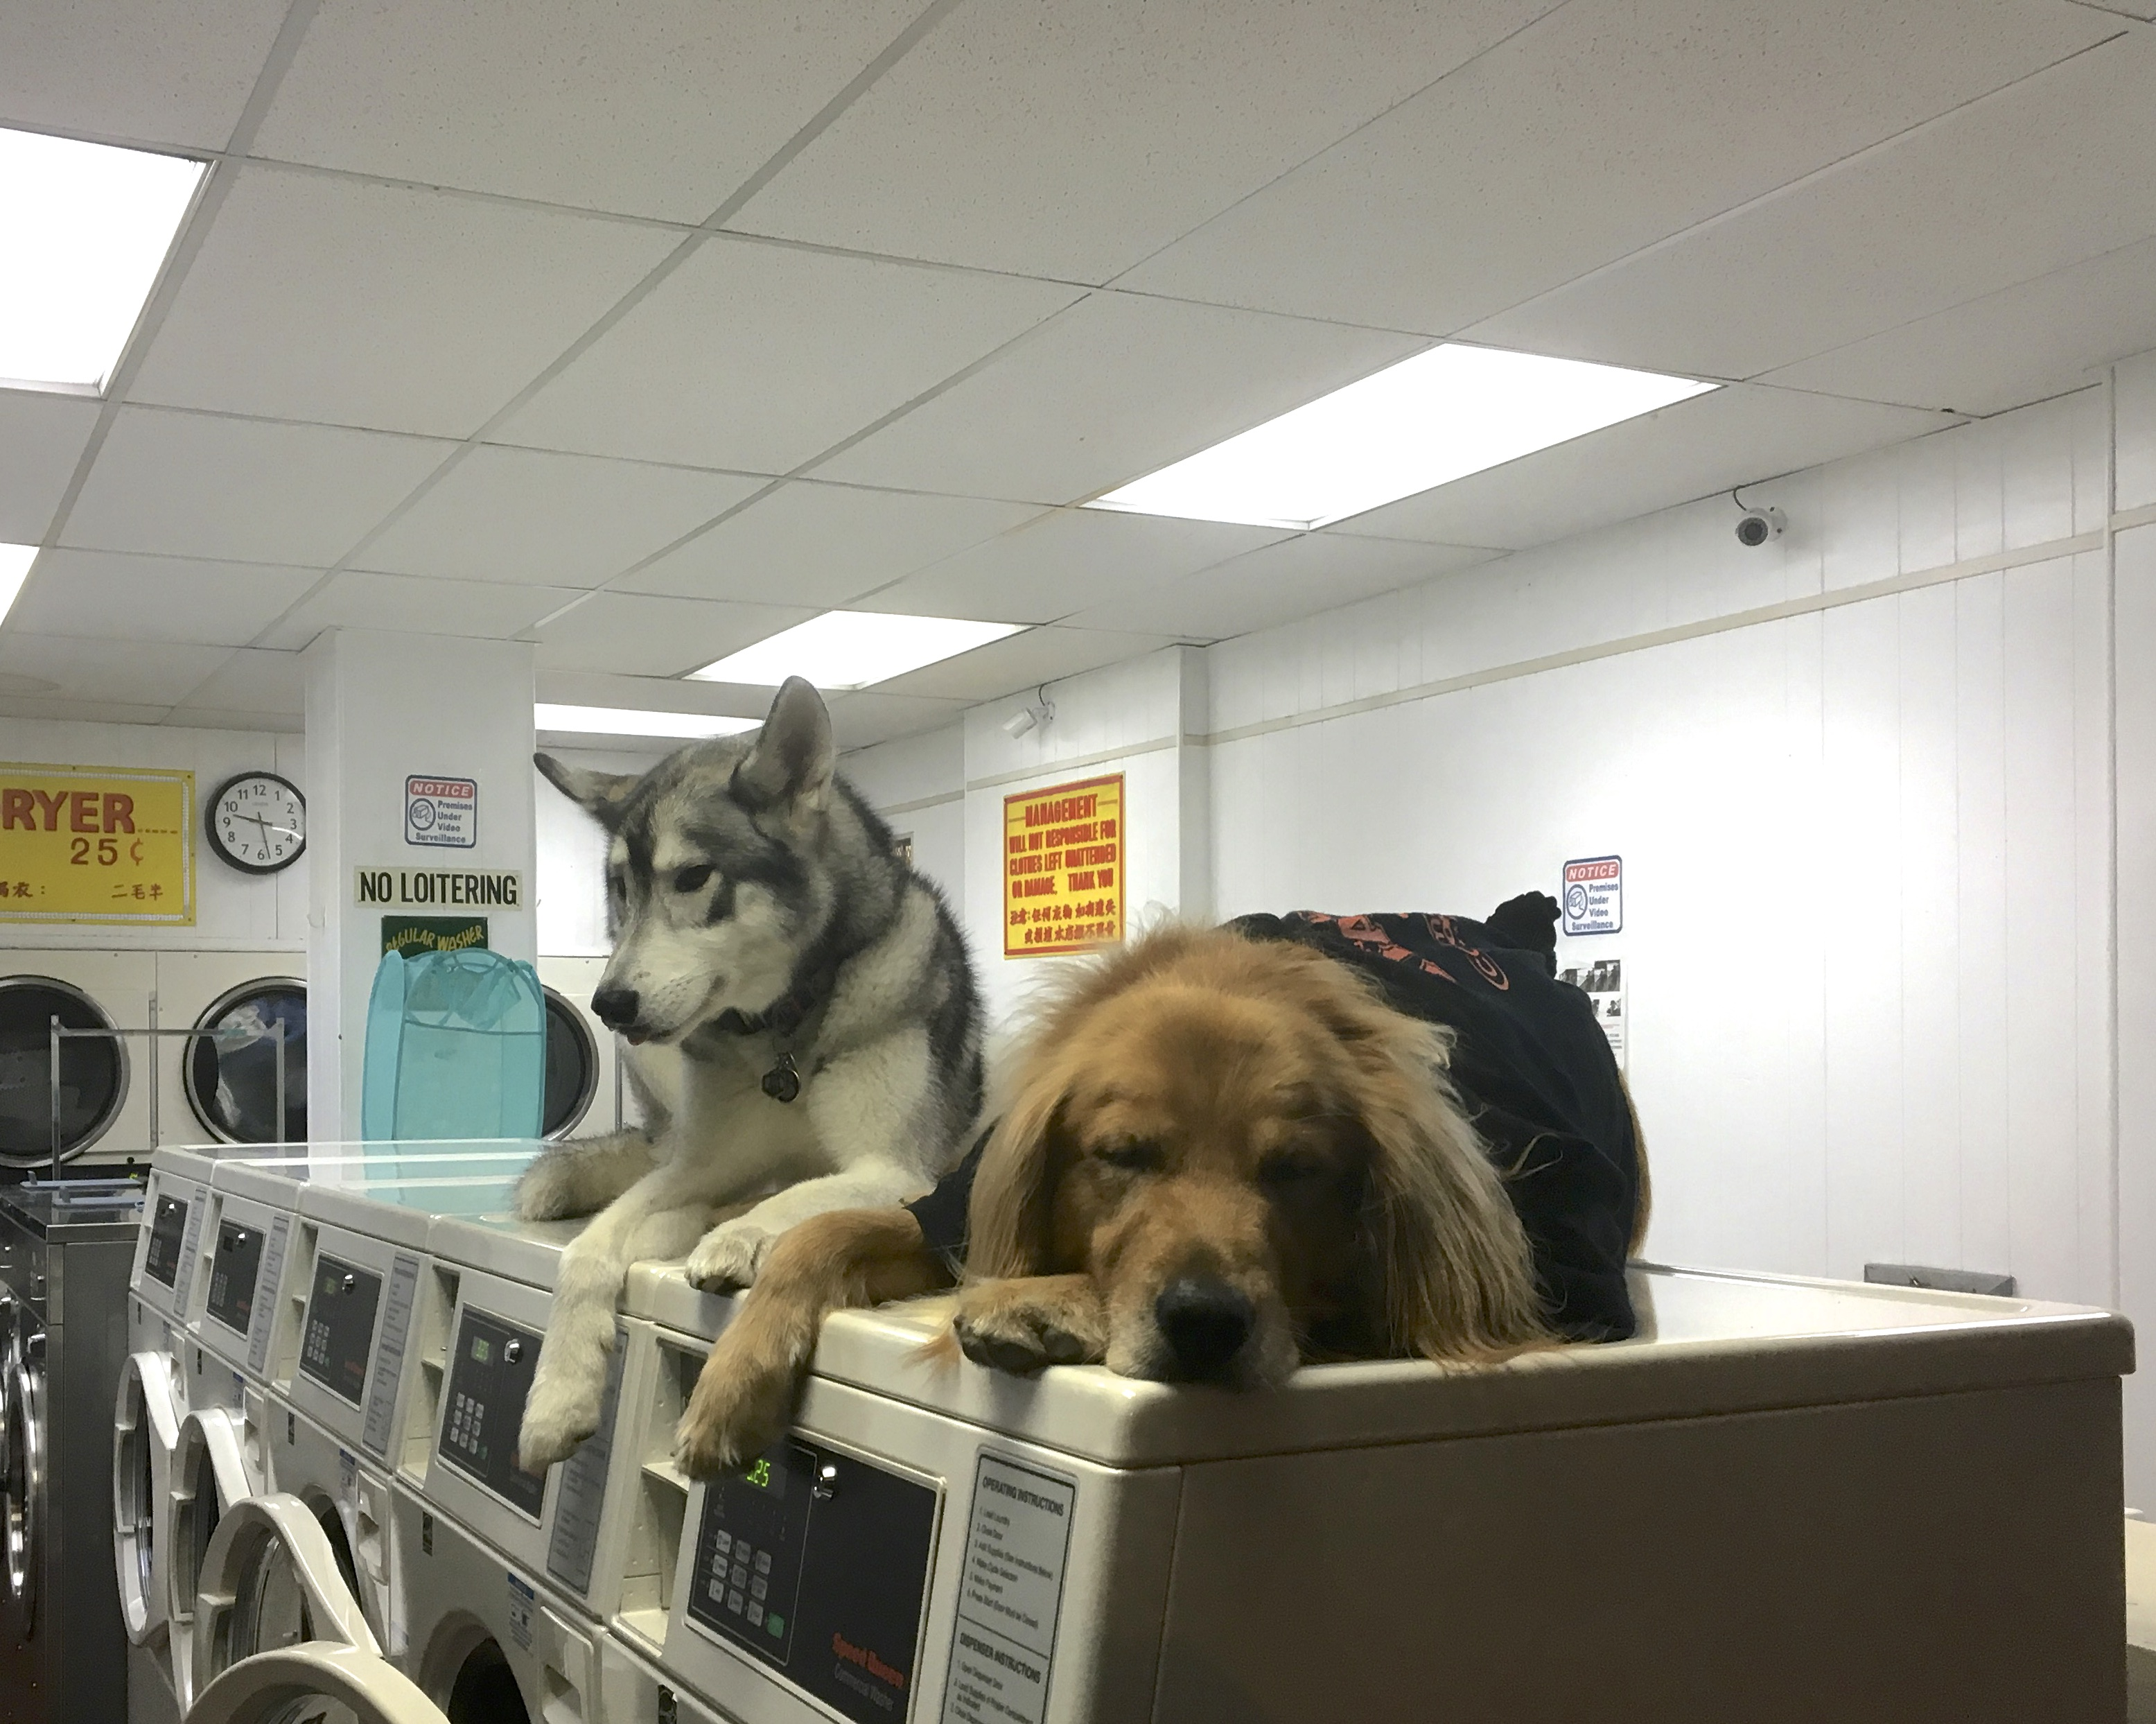 Siberian Husky And Golden Retriever Lying On Commercial Washers In A Laundromat